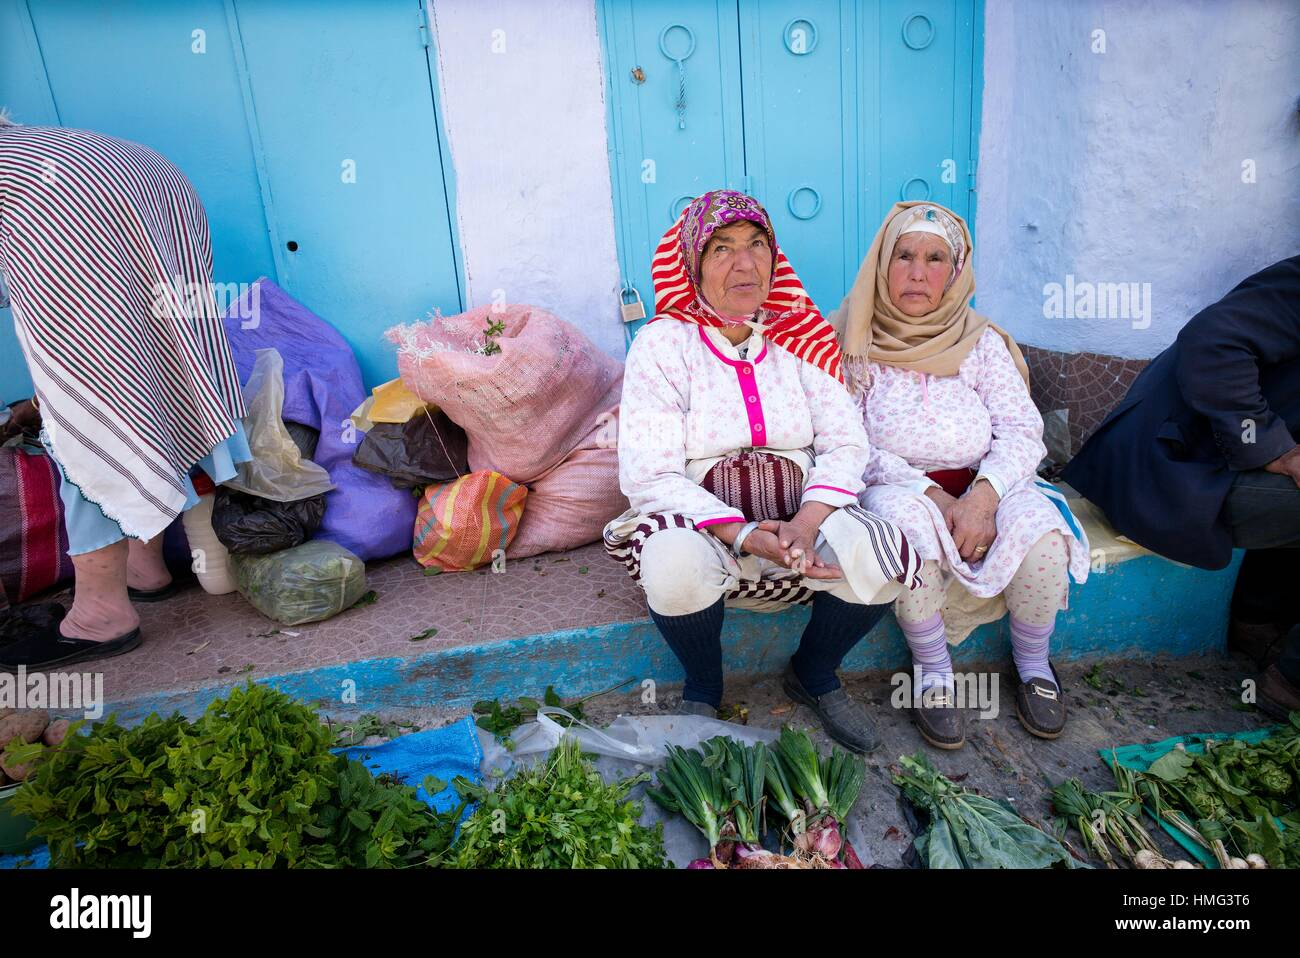 Two Moroccan women in traditional clothing selling vegetables in street market. Chaouen, Moroco Stock Photo